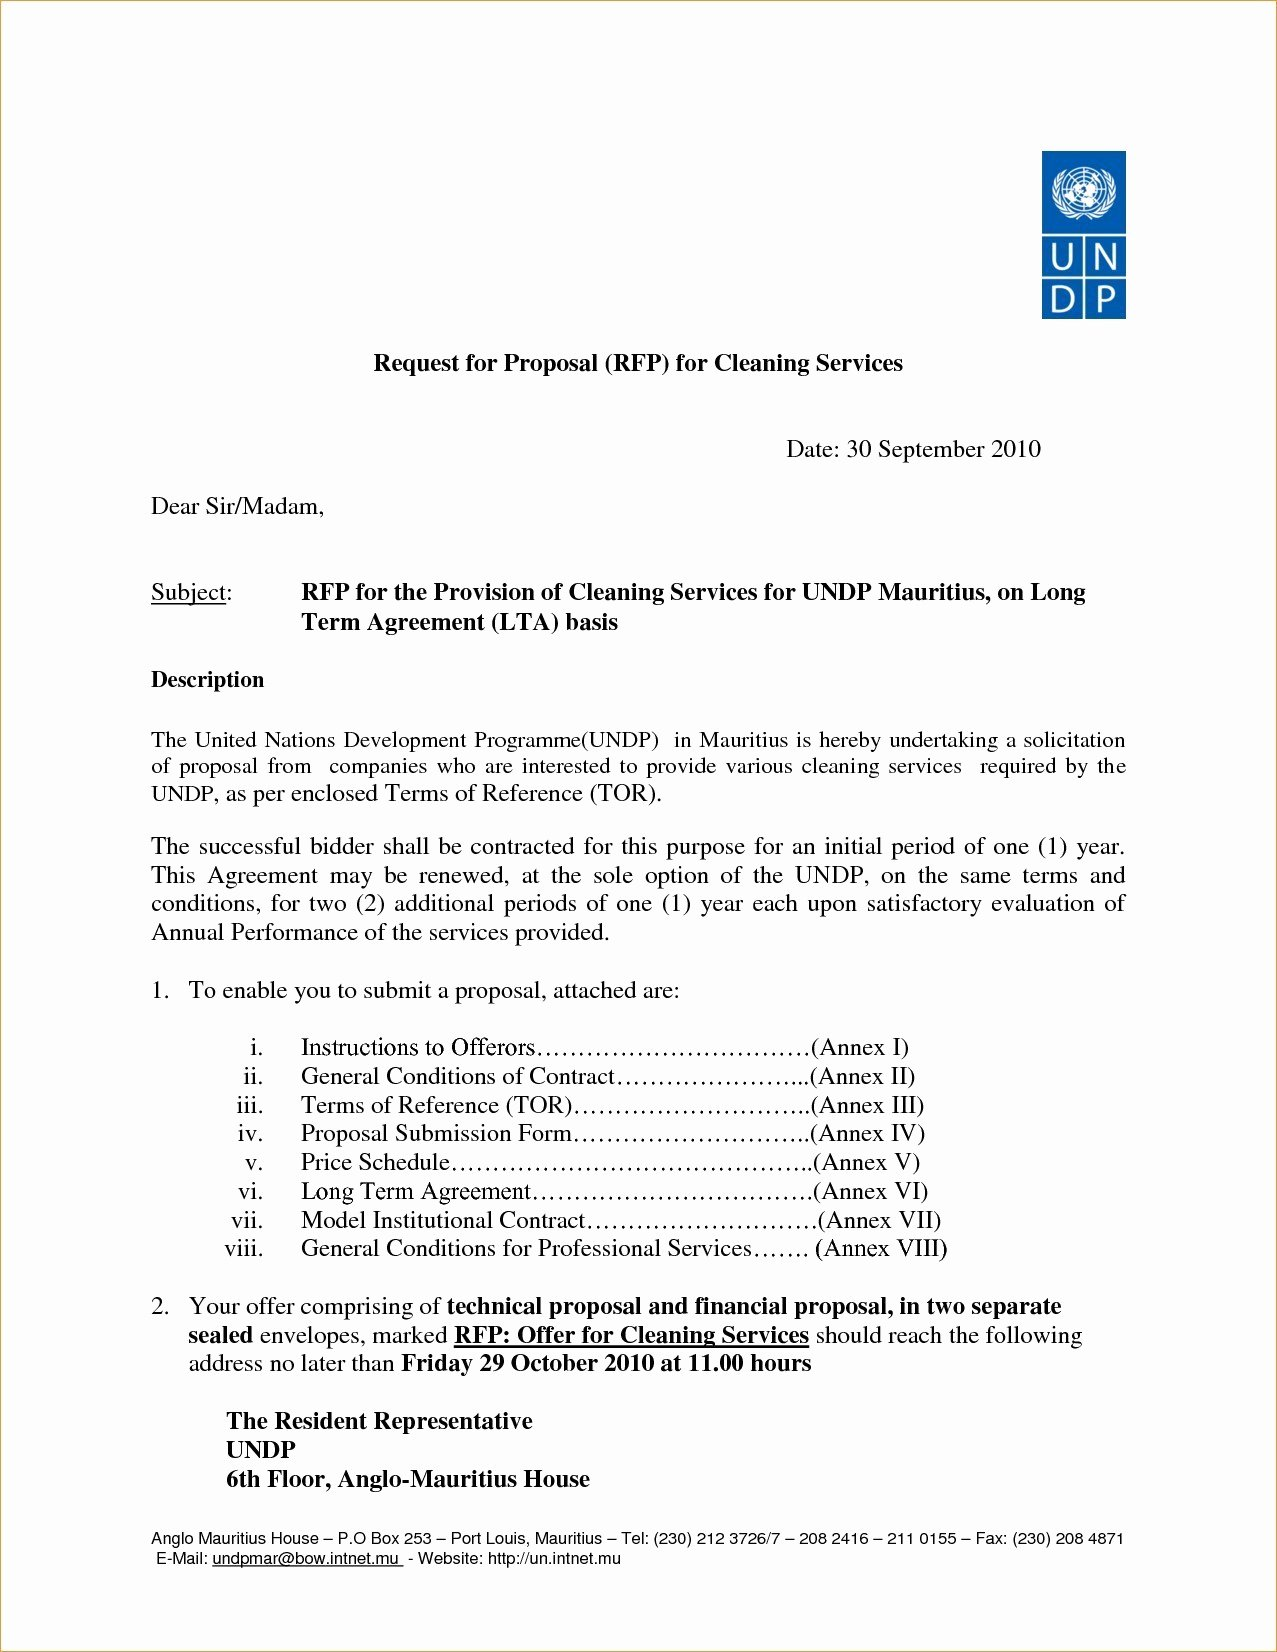 Therapist Marketing Letter Template Best Of therapist Marketing Letter Template Bluemooncatering